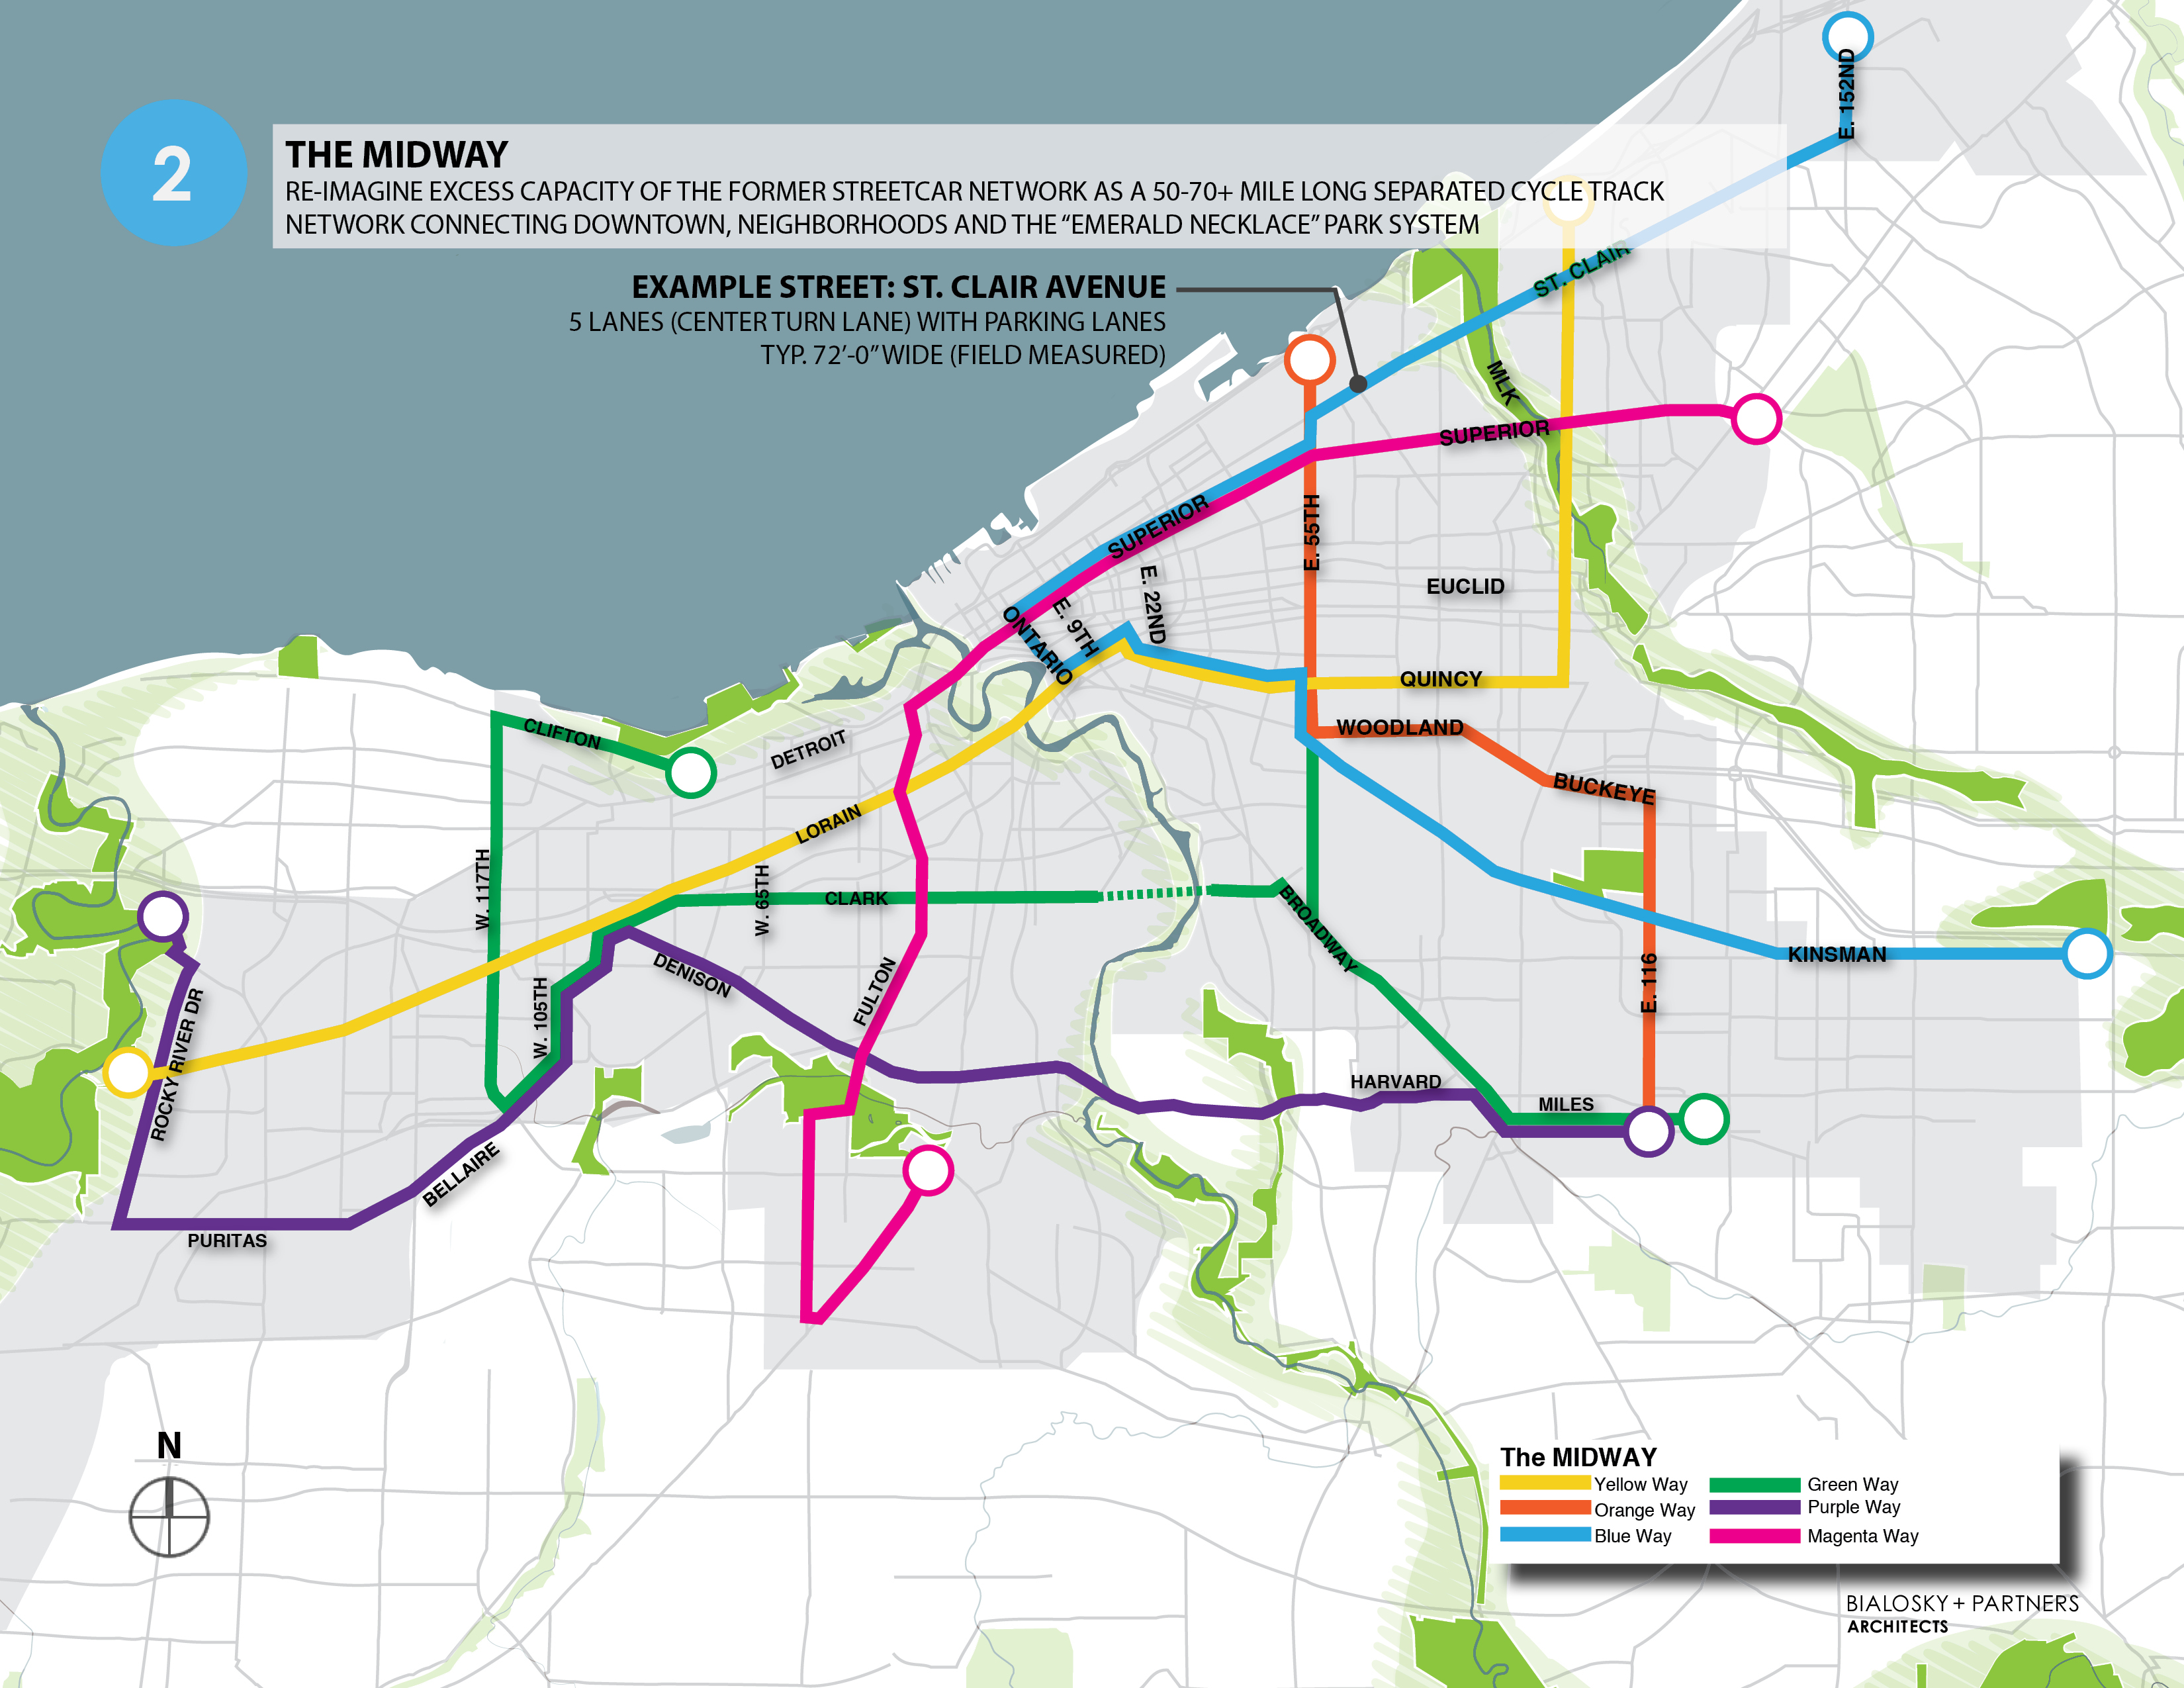 Proponents envision 80 to 100 miles of protected bikeways. Click to enlarge. Map: Bialosky + Partners Architects